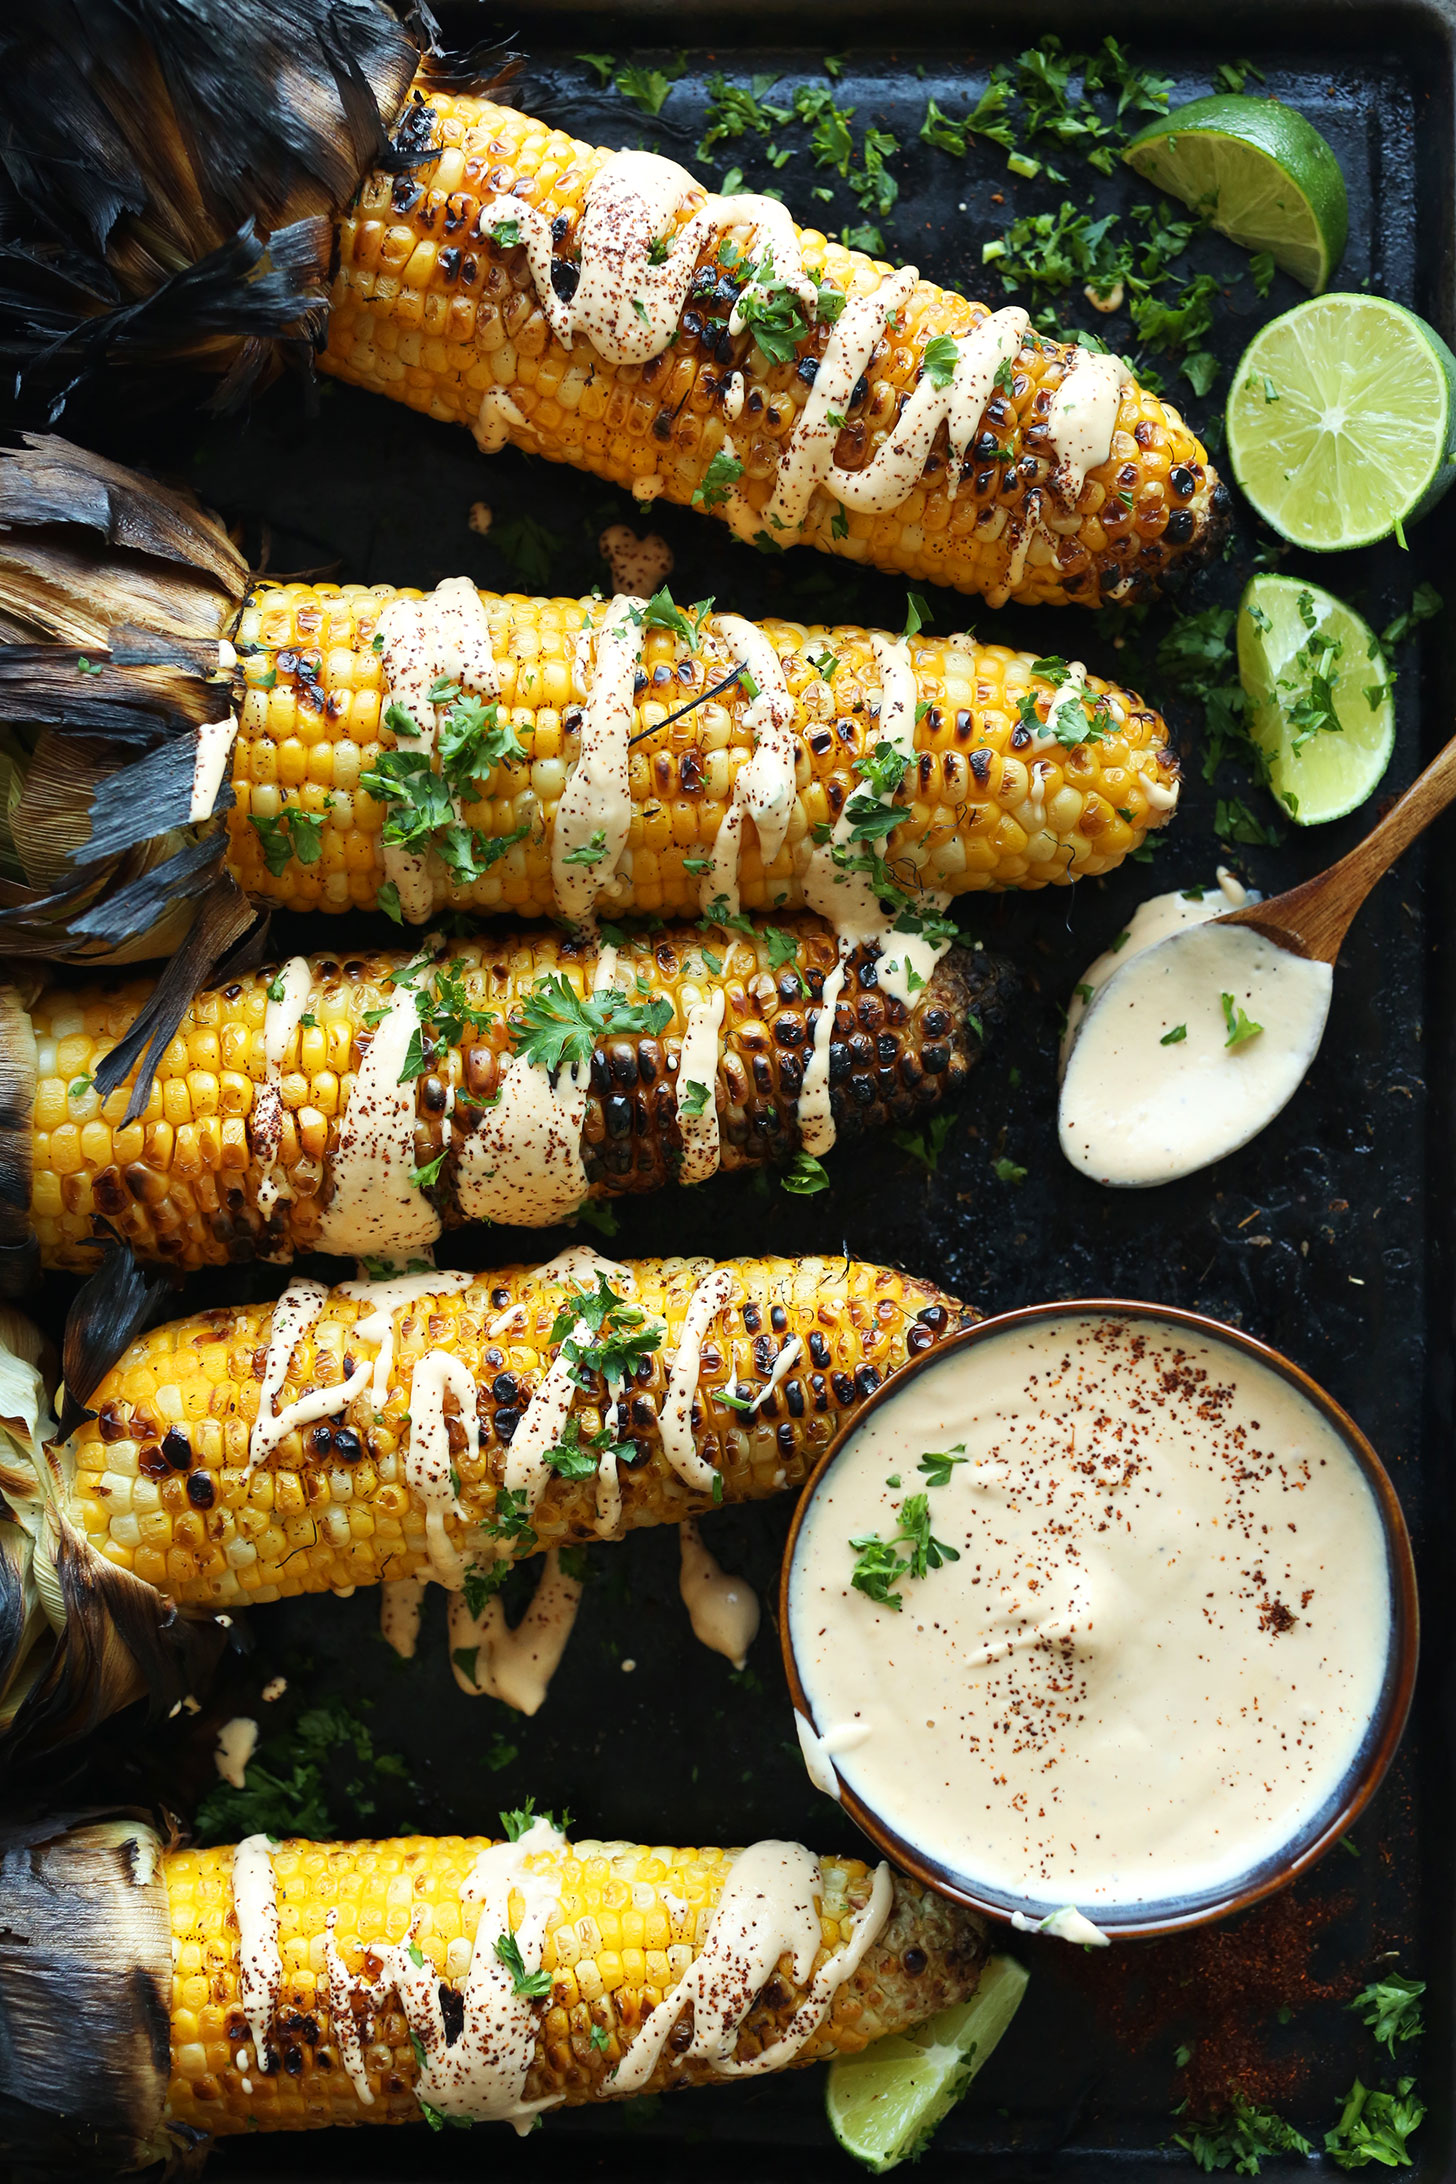 Grilled Corn Cobs drizzled with vegan Sriracha Aioli and fresh cilantro for a summertime recipe